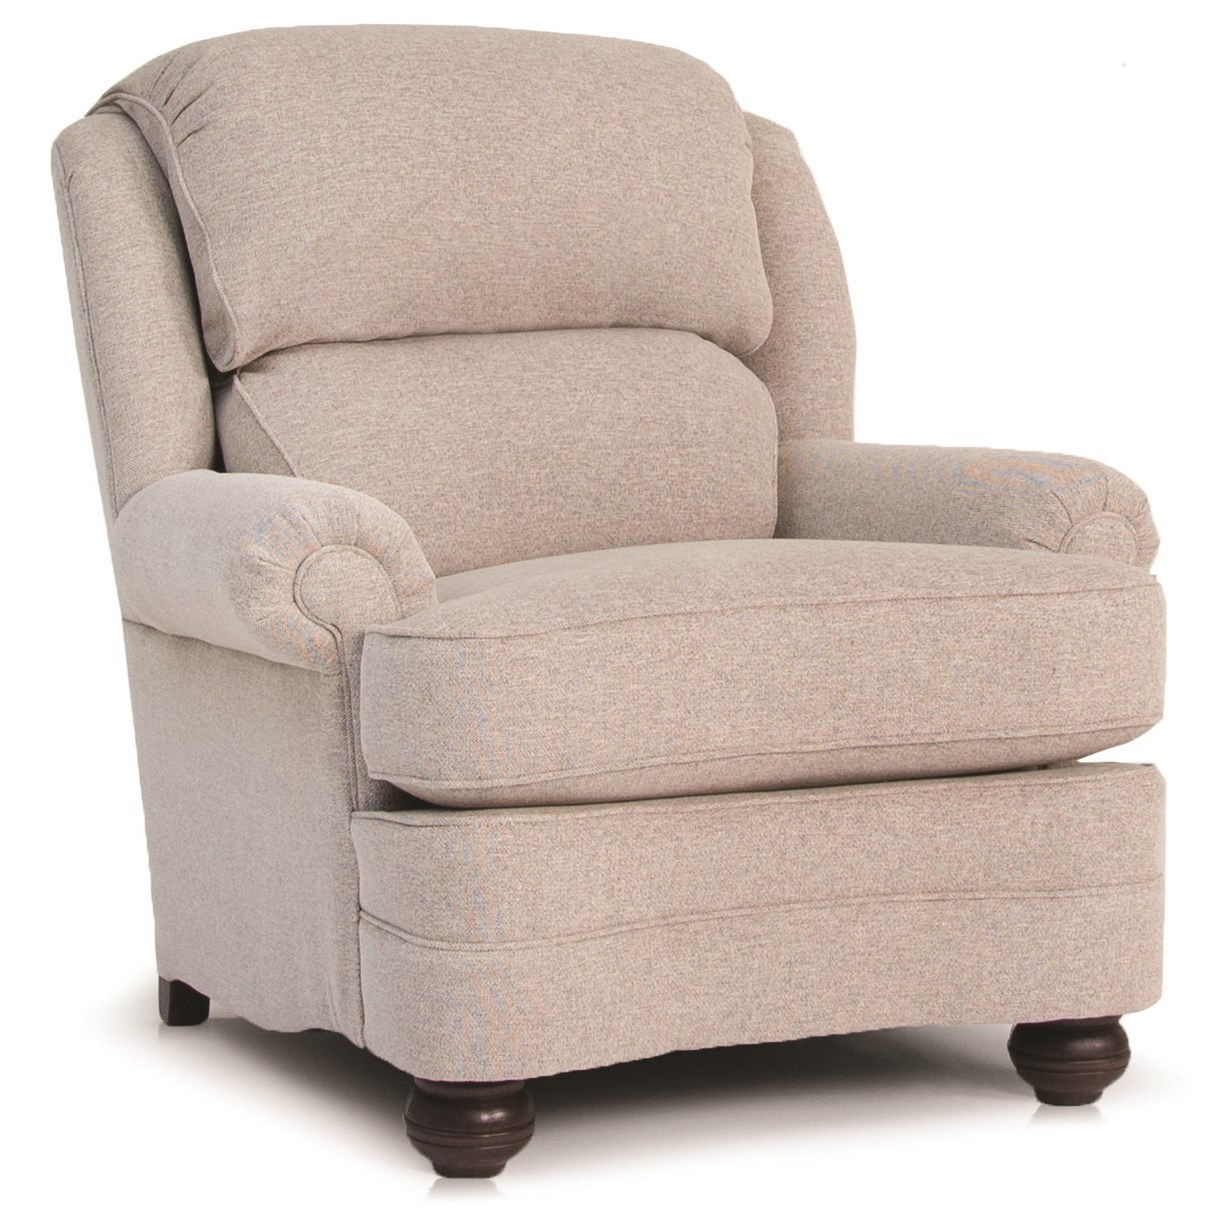 311 Upholstered Chair by Smith Brothers at Rooms for Less